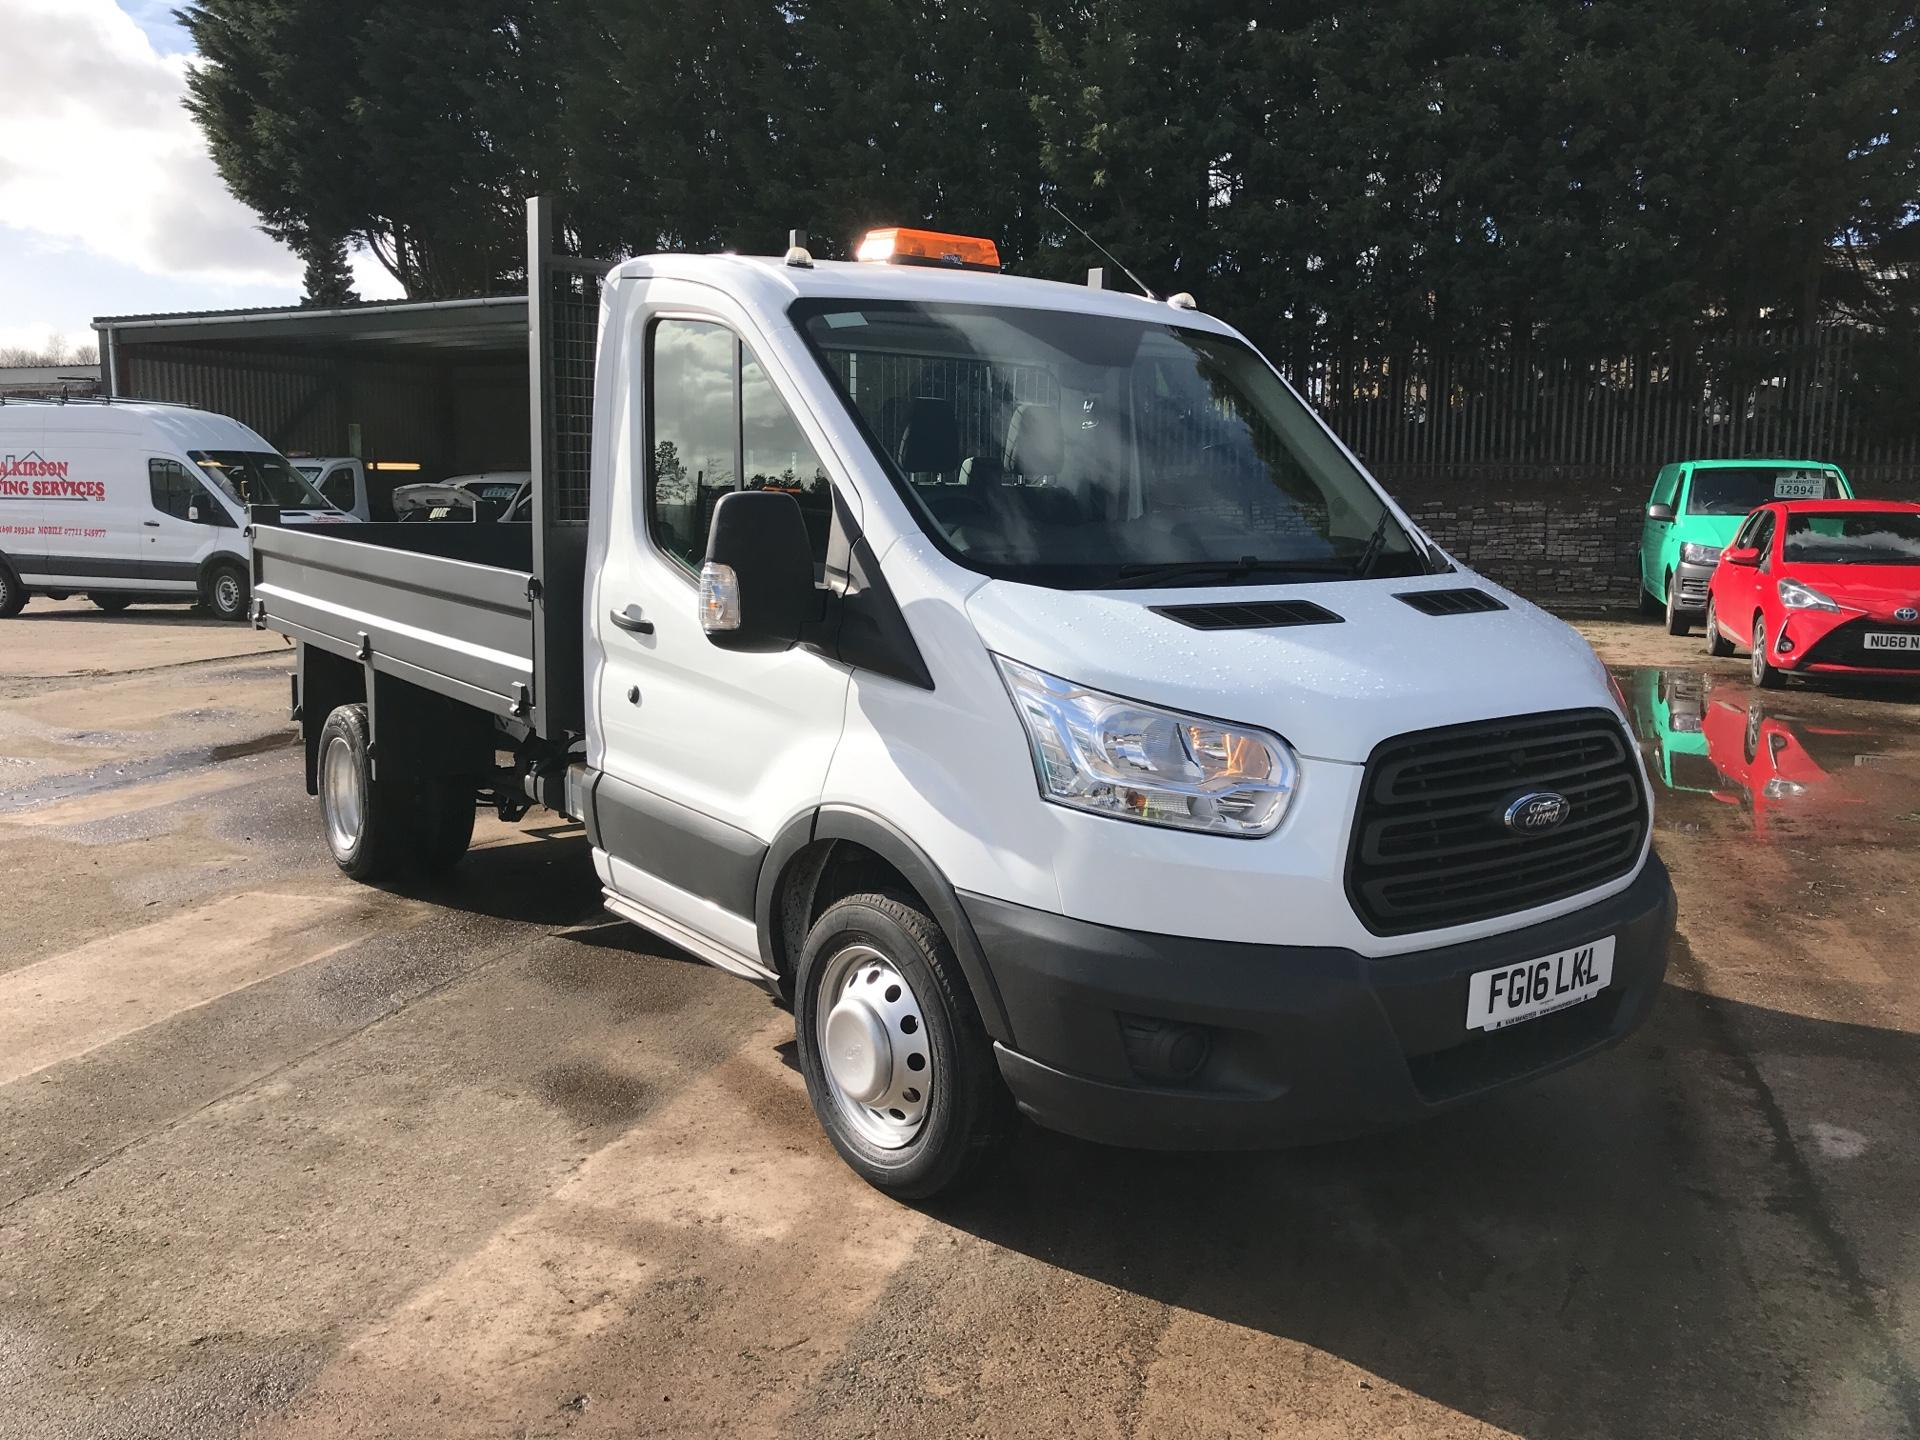 2016 Ford Transit 350 L2 SINGLE CAB TIPPER 125PS EURO 5 (FG16LKL)